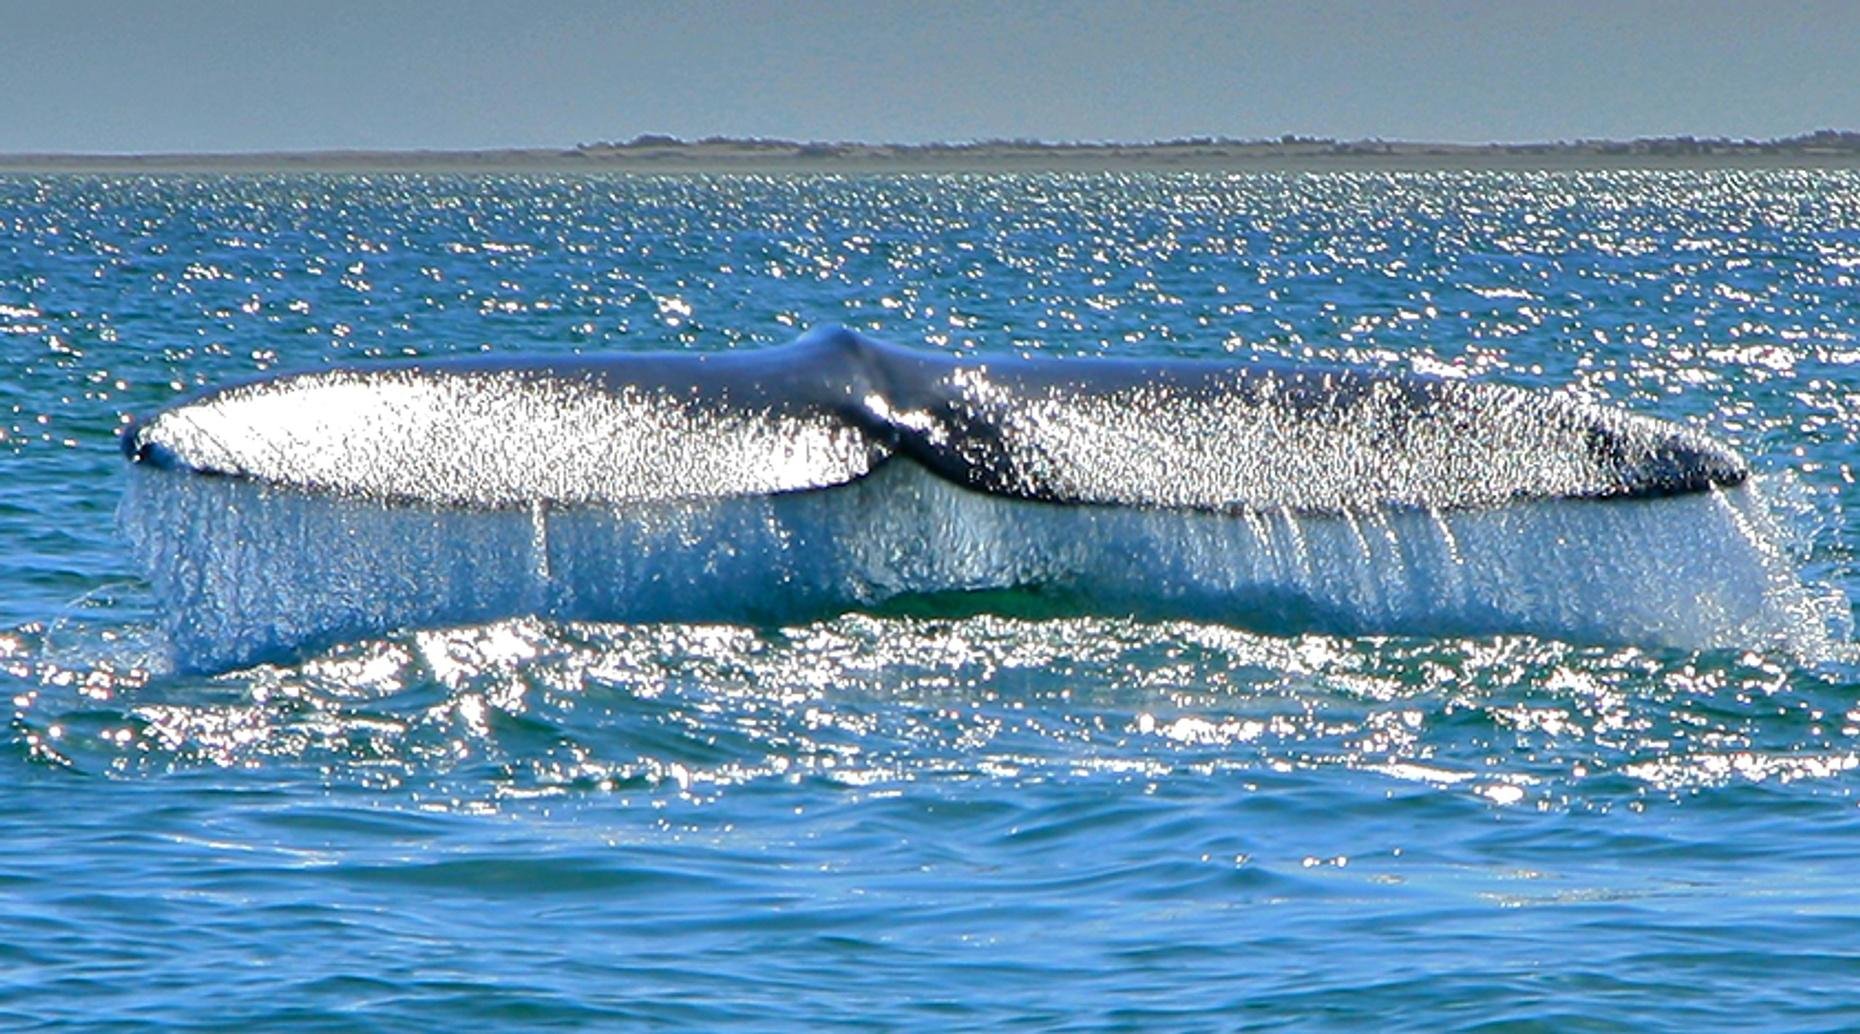 All-Inclusive Whale Watching & Snorkeling Tour